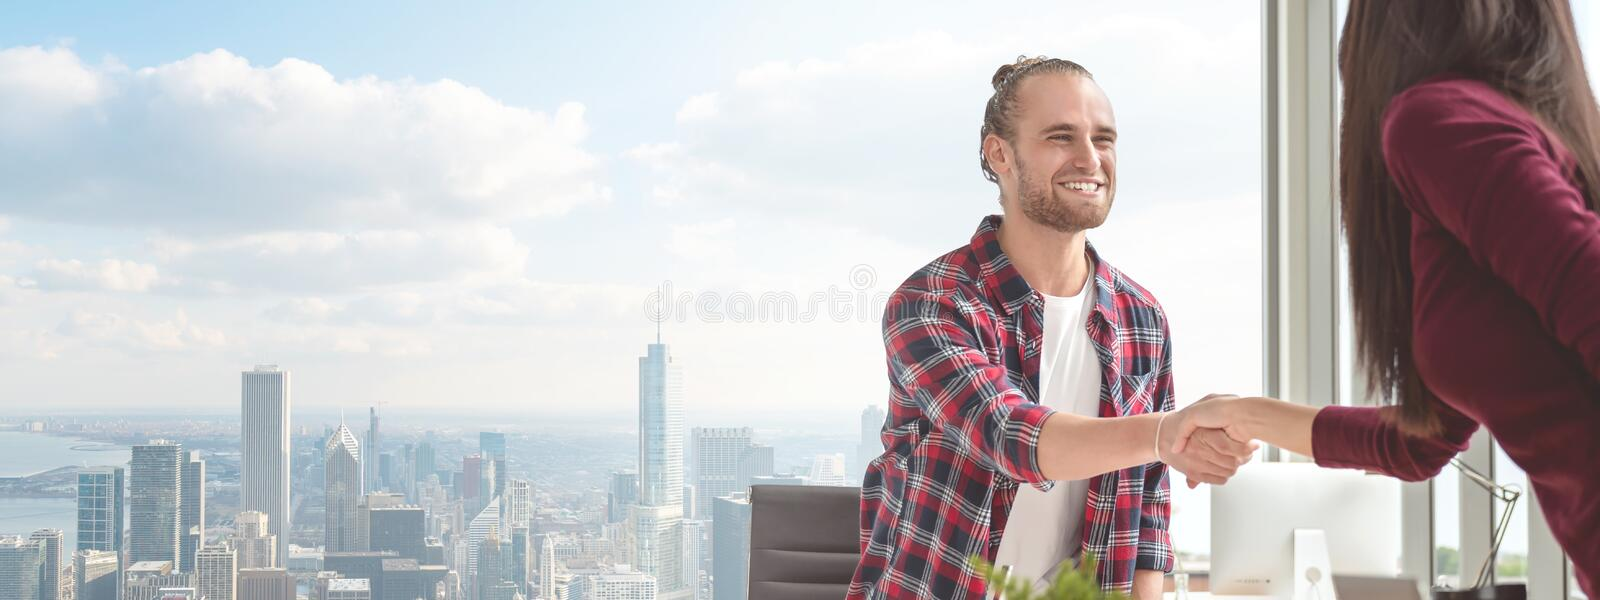 Confident young caucasian asian man shaking hands with partner woman in business agreement smiling together feeling happy. Banner stock photo